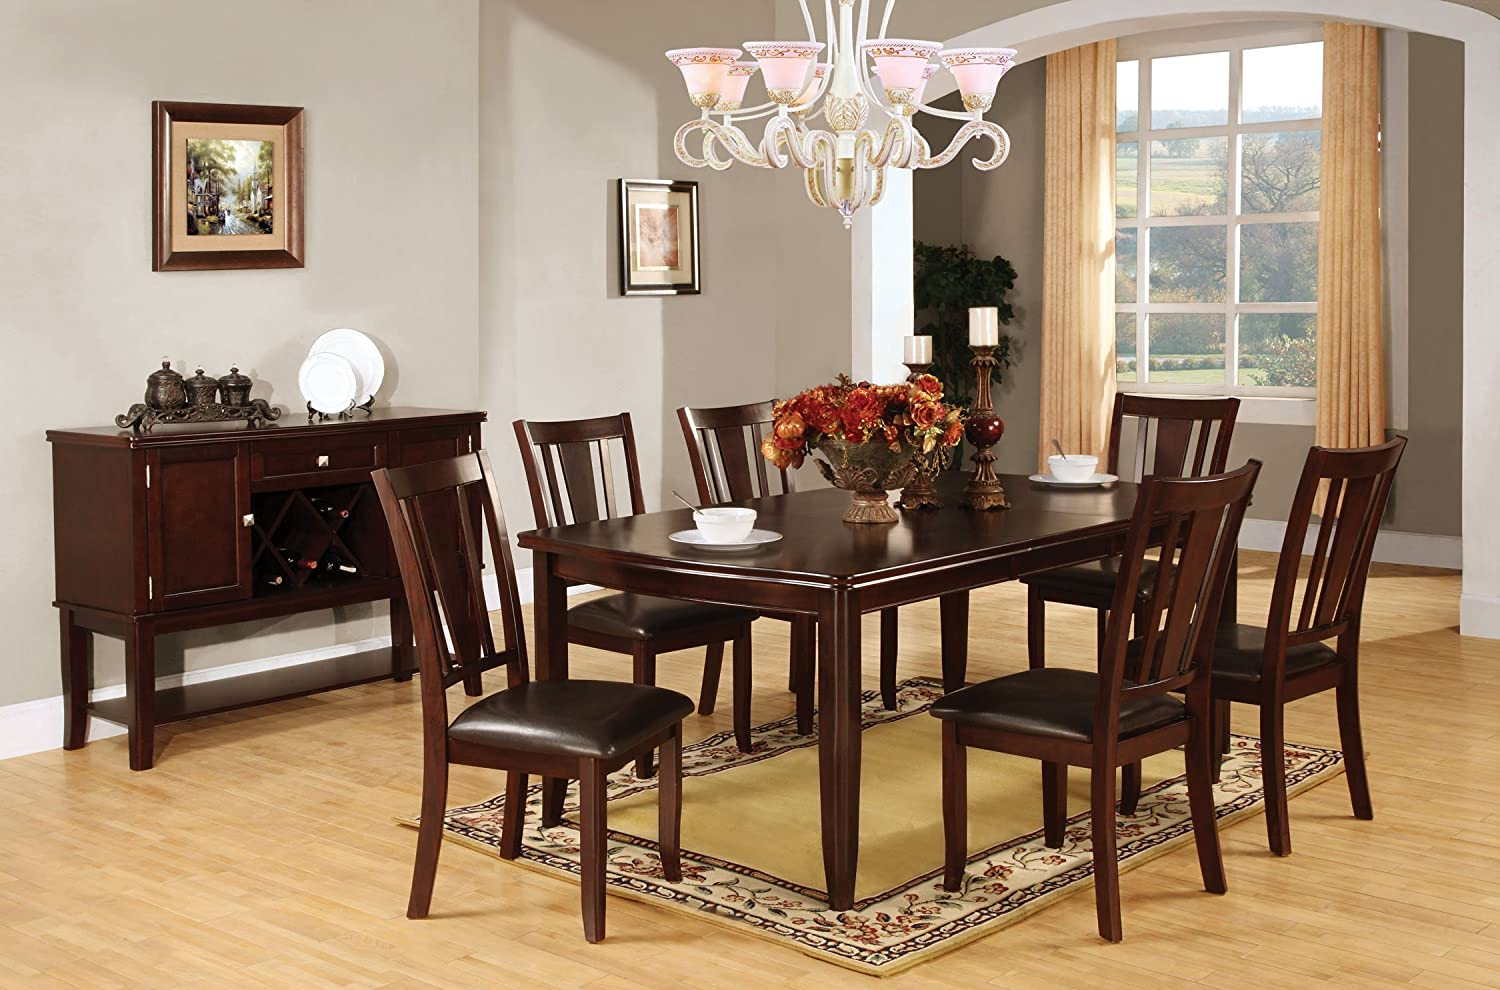 Amazon.com   Furniture Of America Anlow 7 Piece Dining Table Set With  18 Inch Expandable Leaf, Espresso   Table U0026 Chair Sets